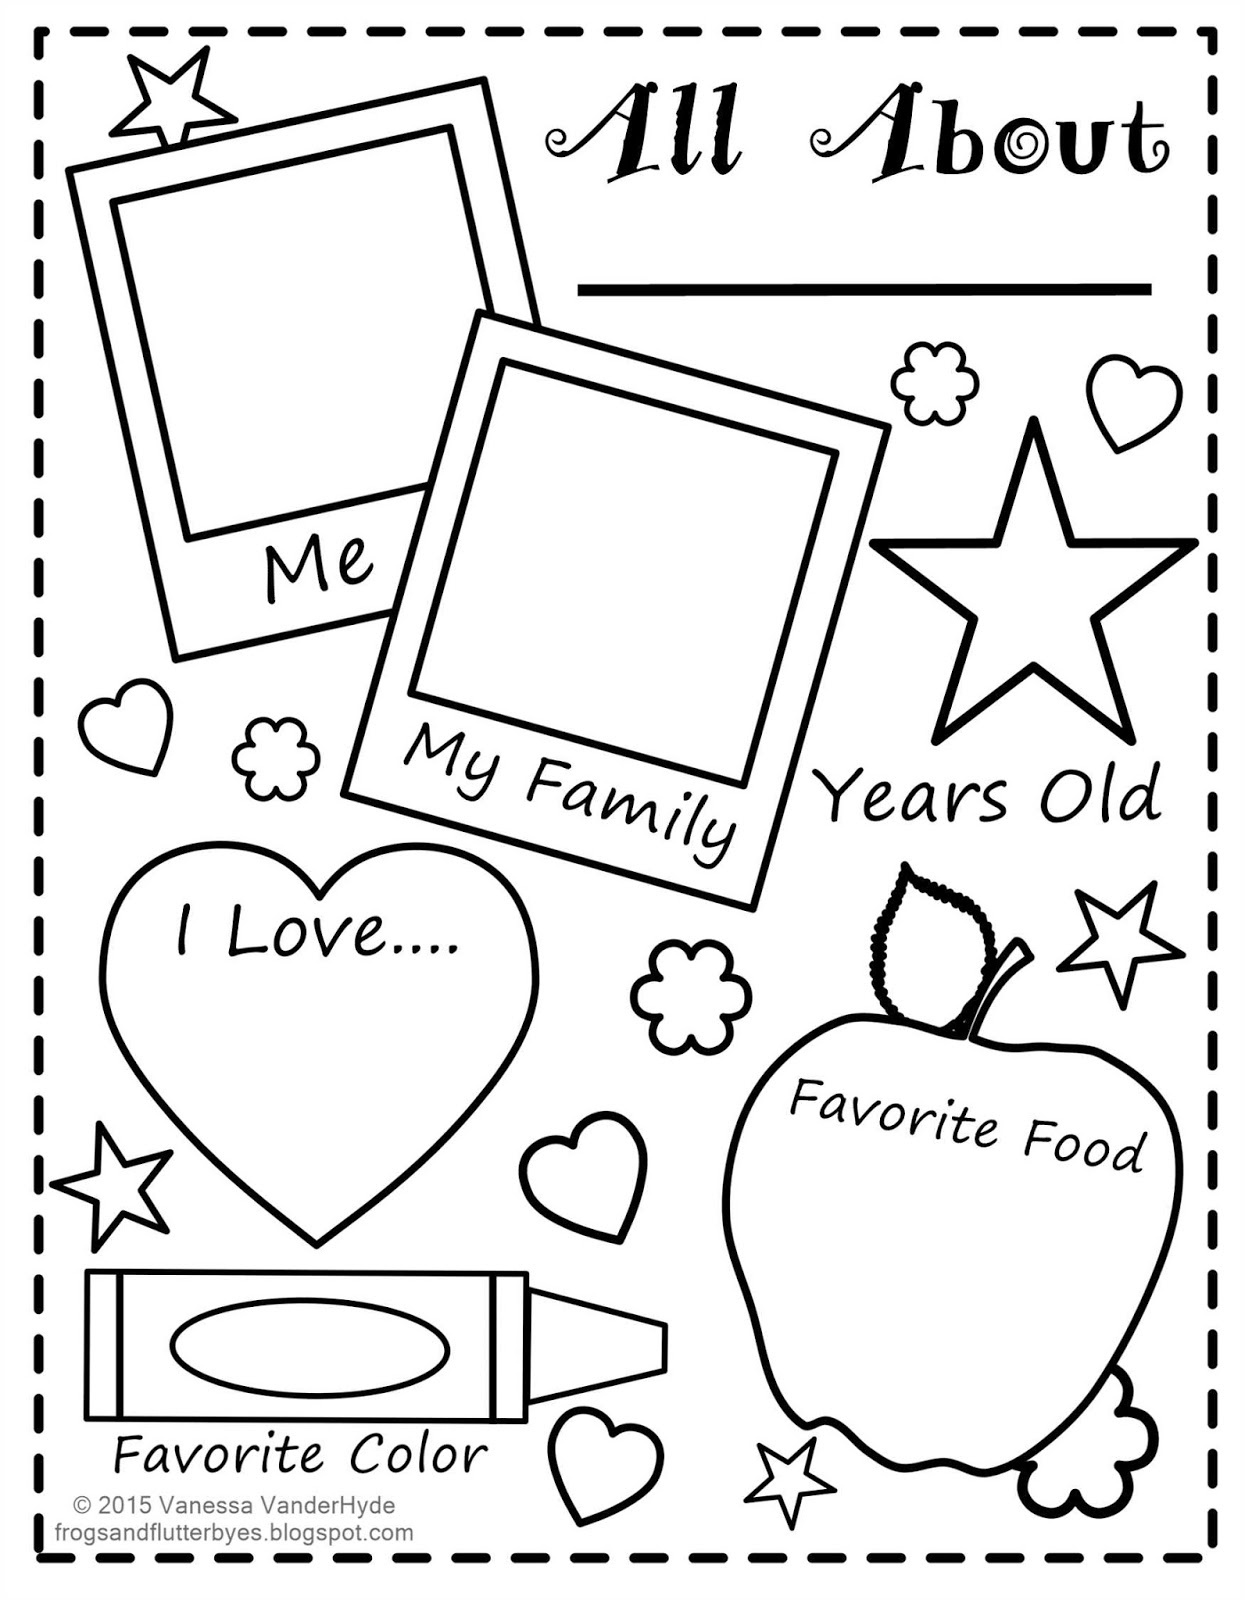 The Frogs And The Flutterbyes: All About Me Free Printable - Free Printable All About Me Poster